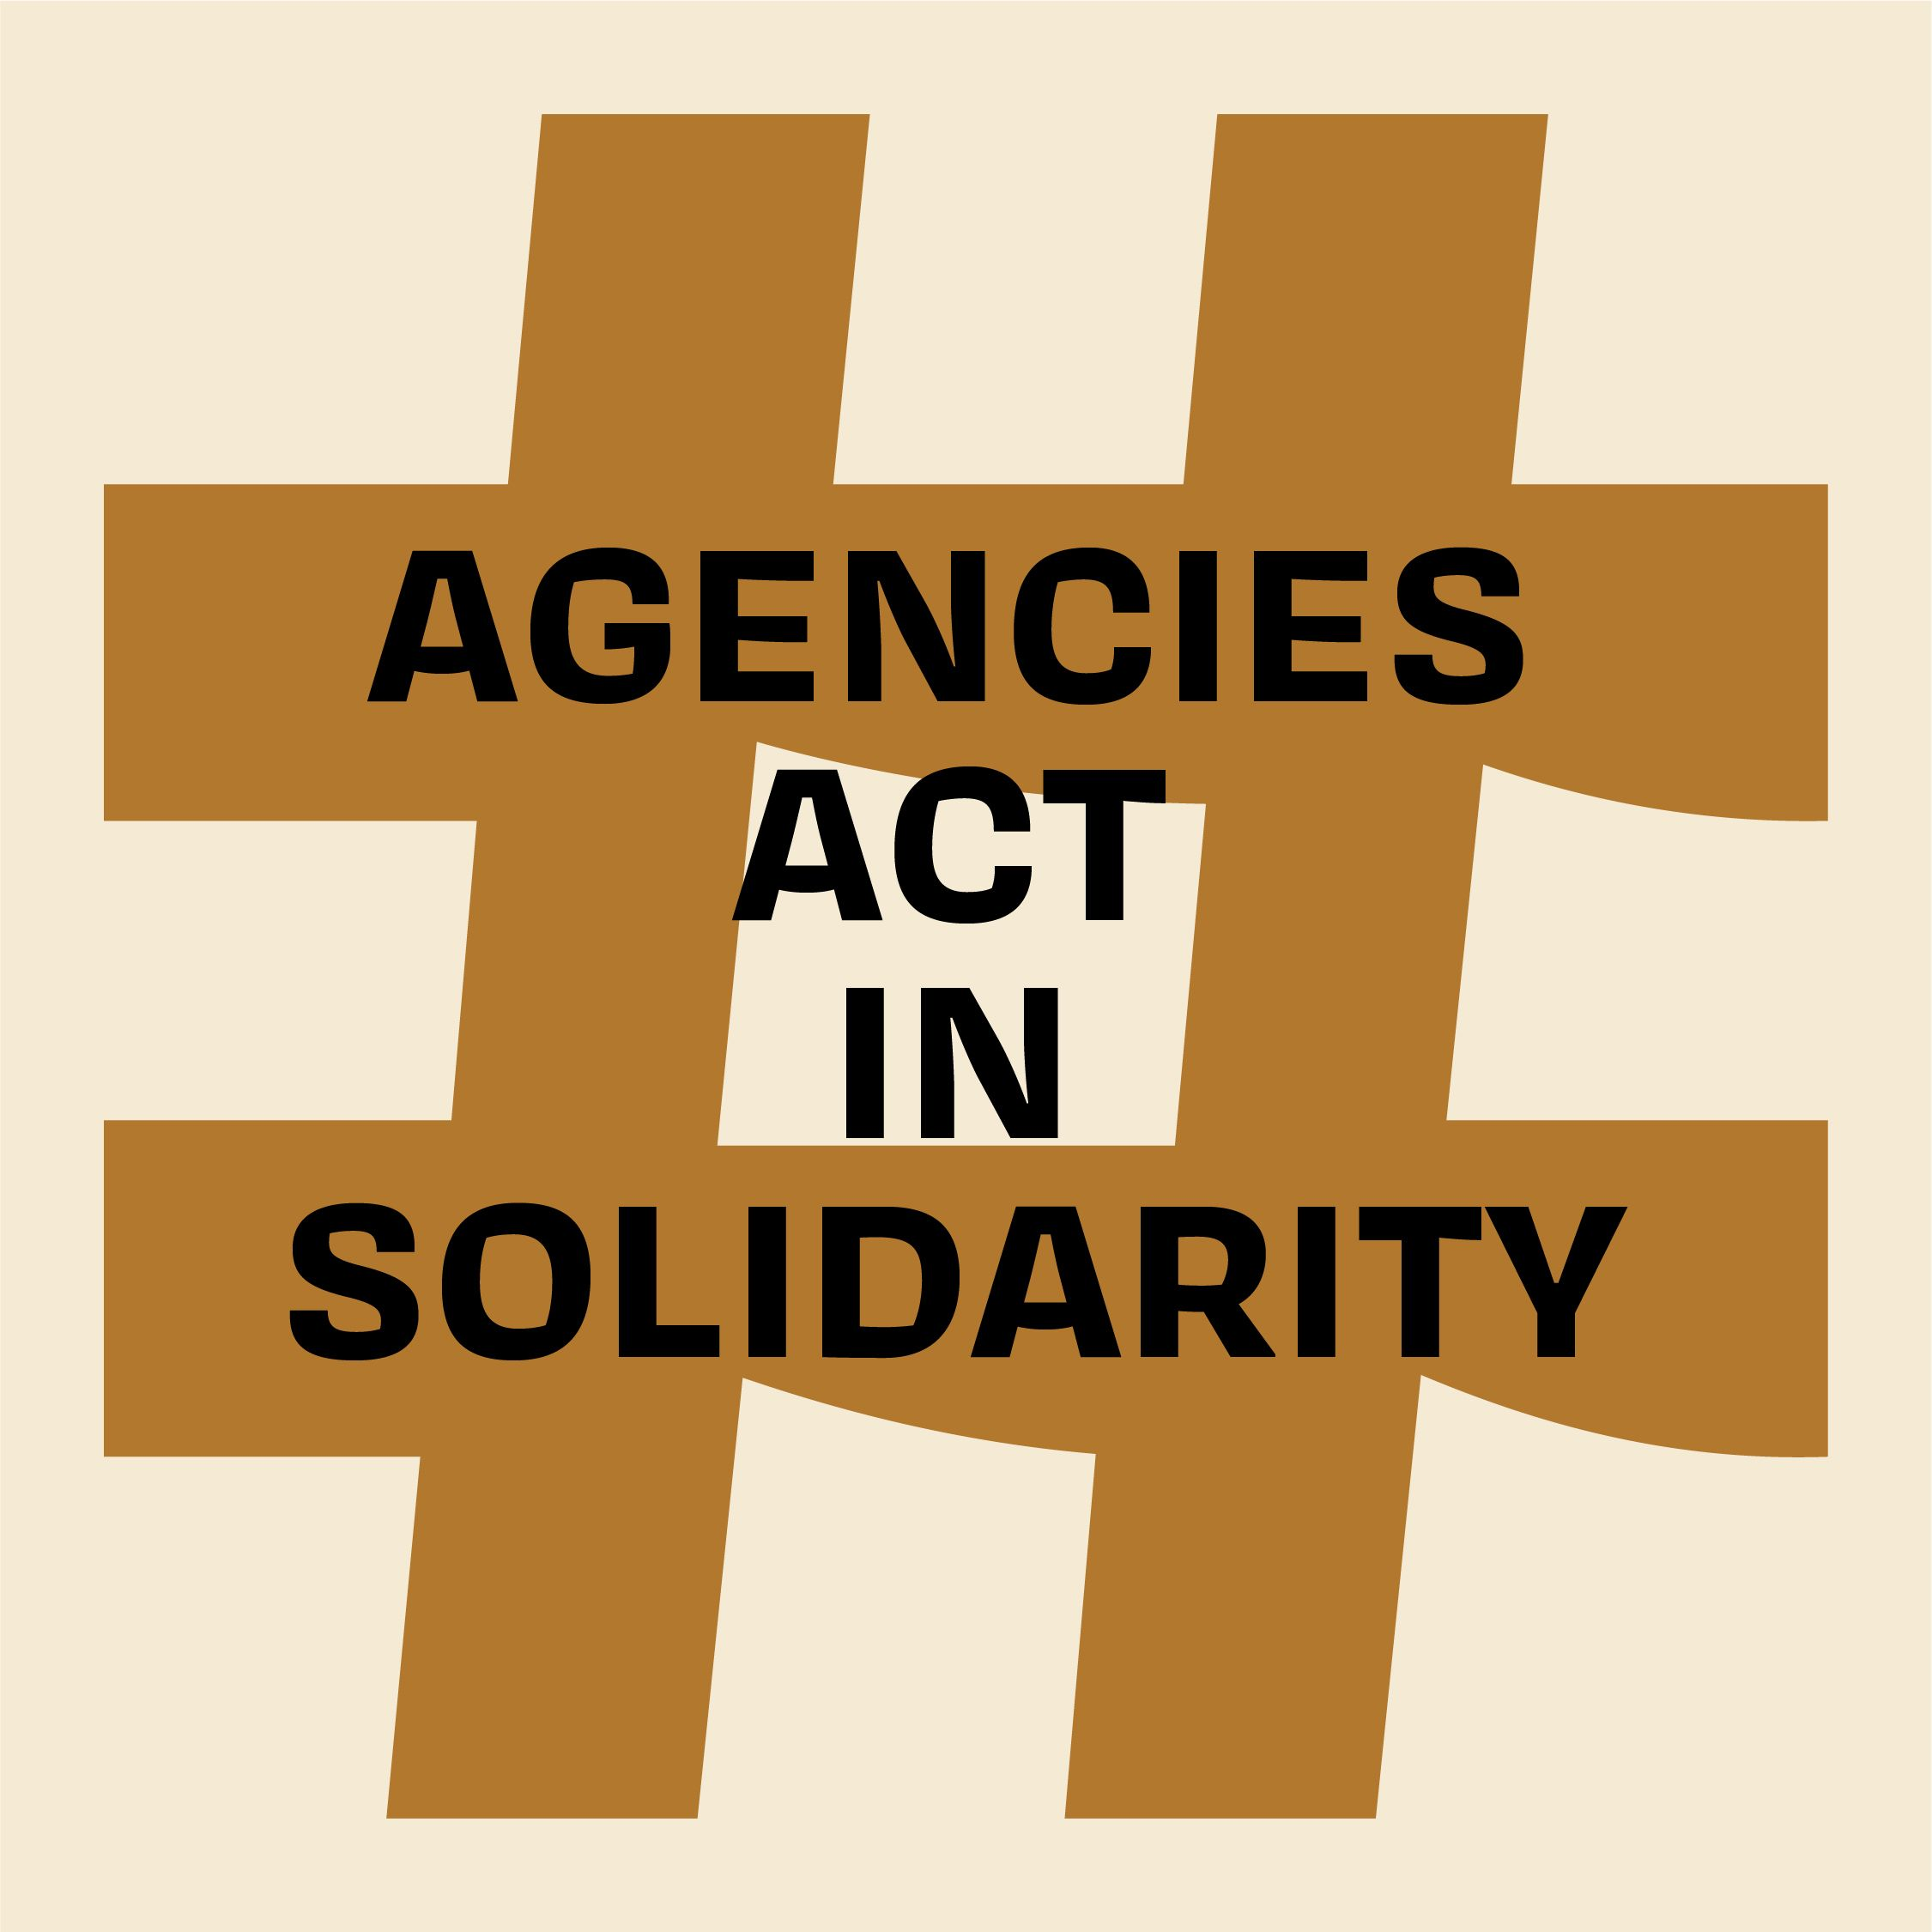 Agencies act in solidarity